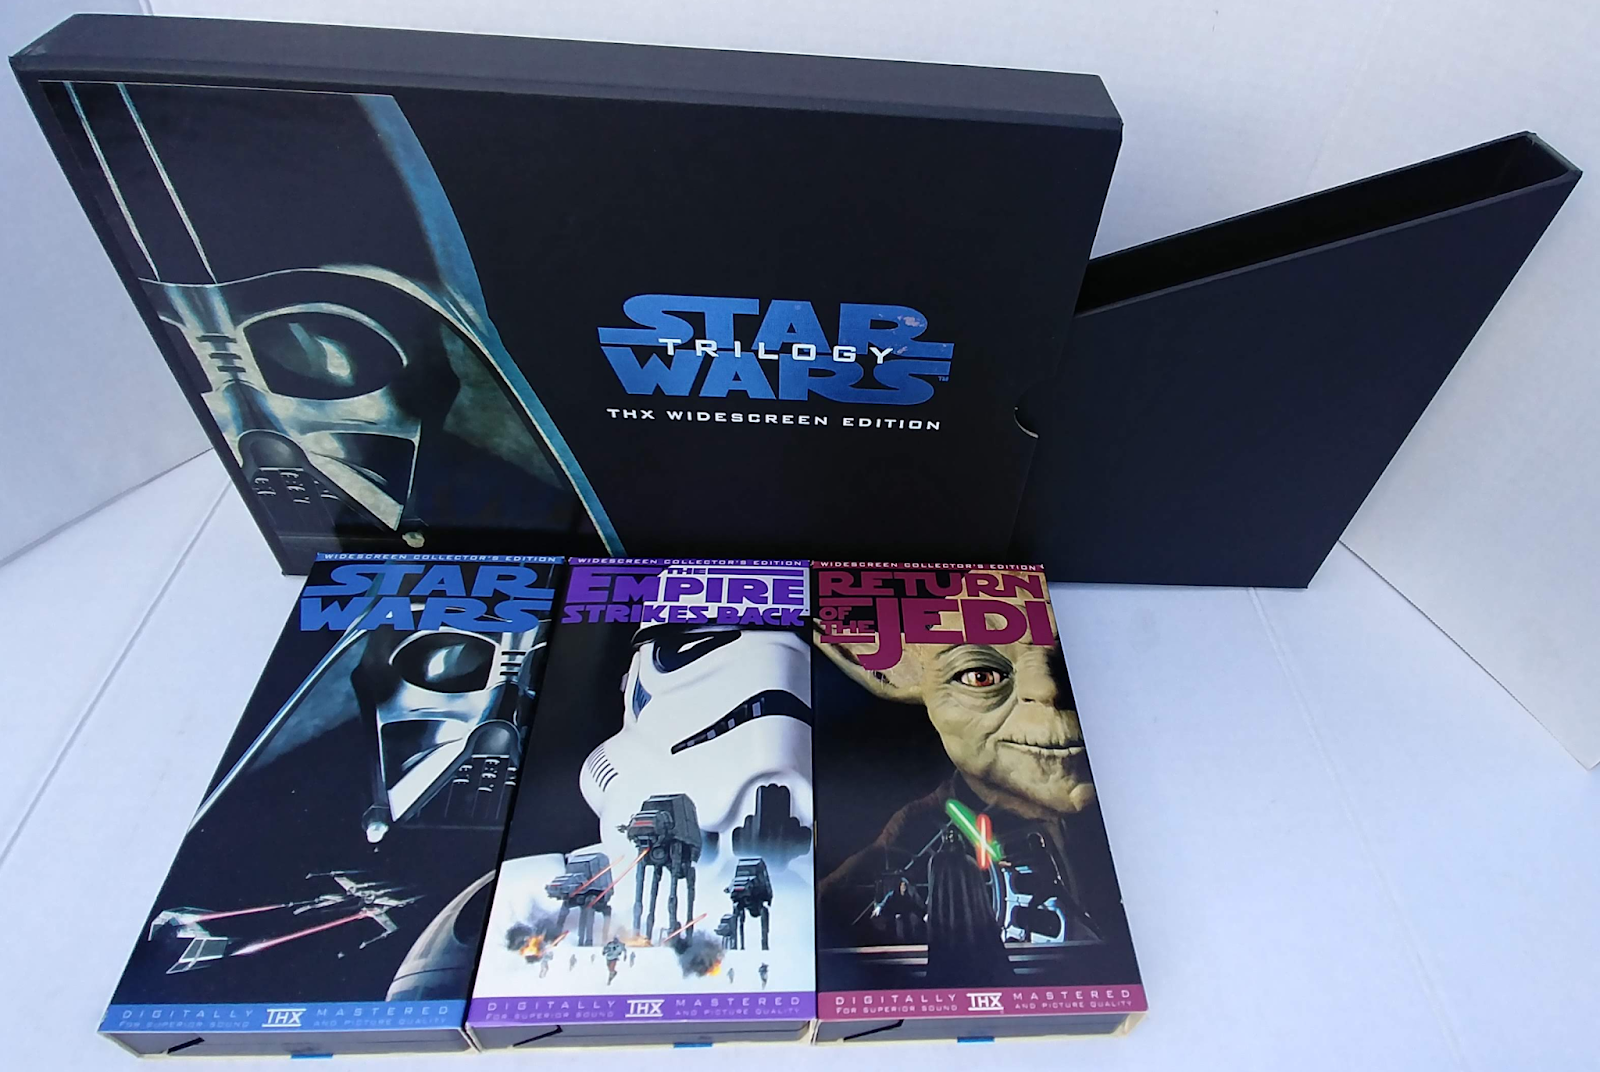 Star Wars Obsessed The Star Wars Trilogy The Widescreen Edition Vhs Box Set